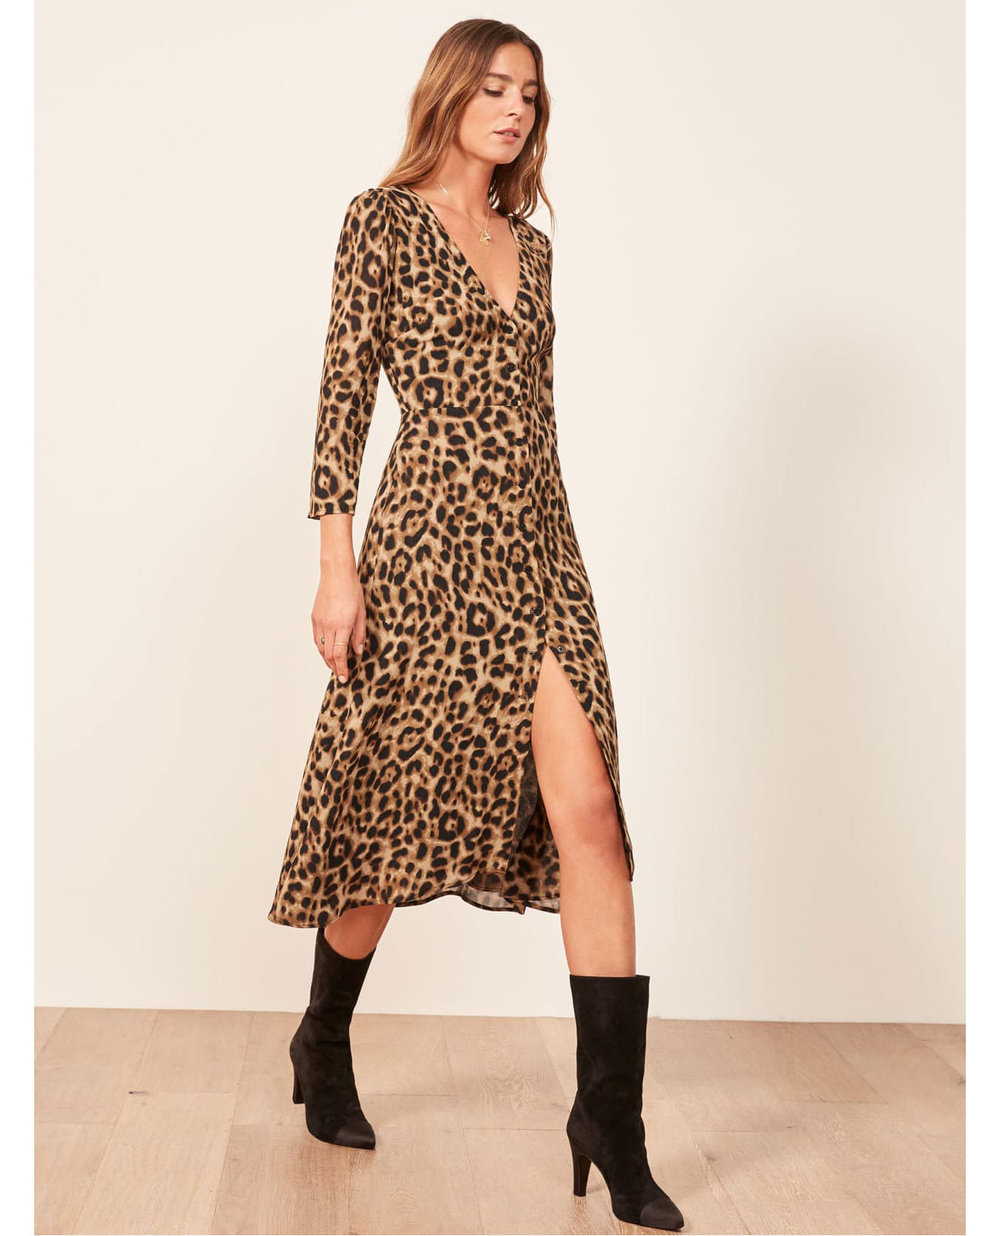 Reformation Leopard dress     $218